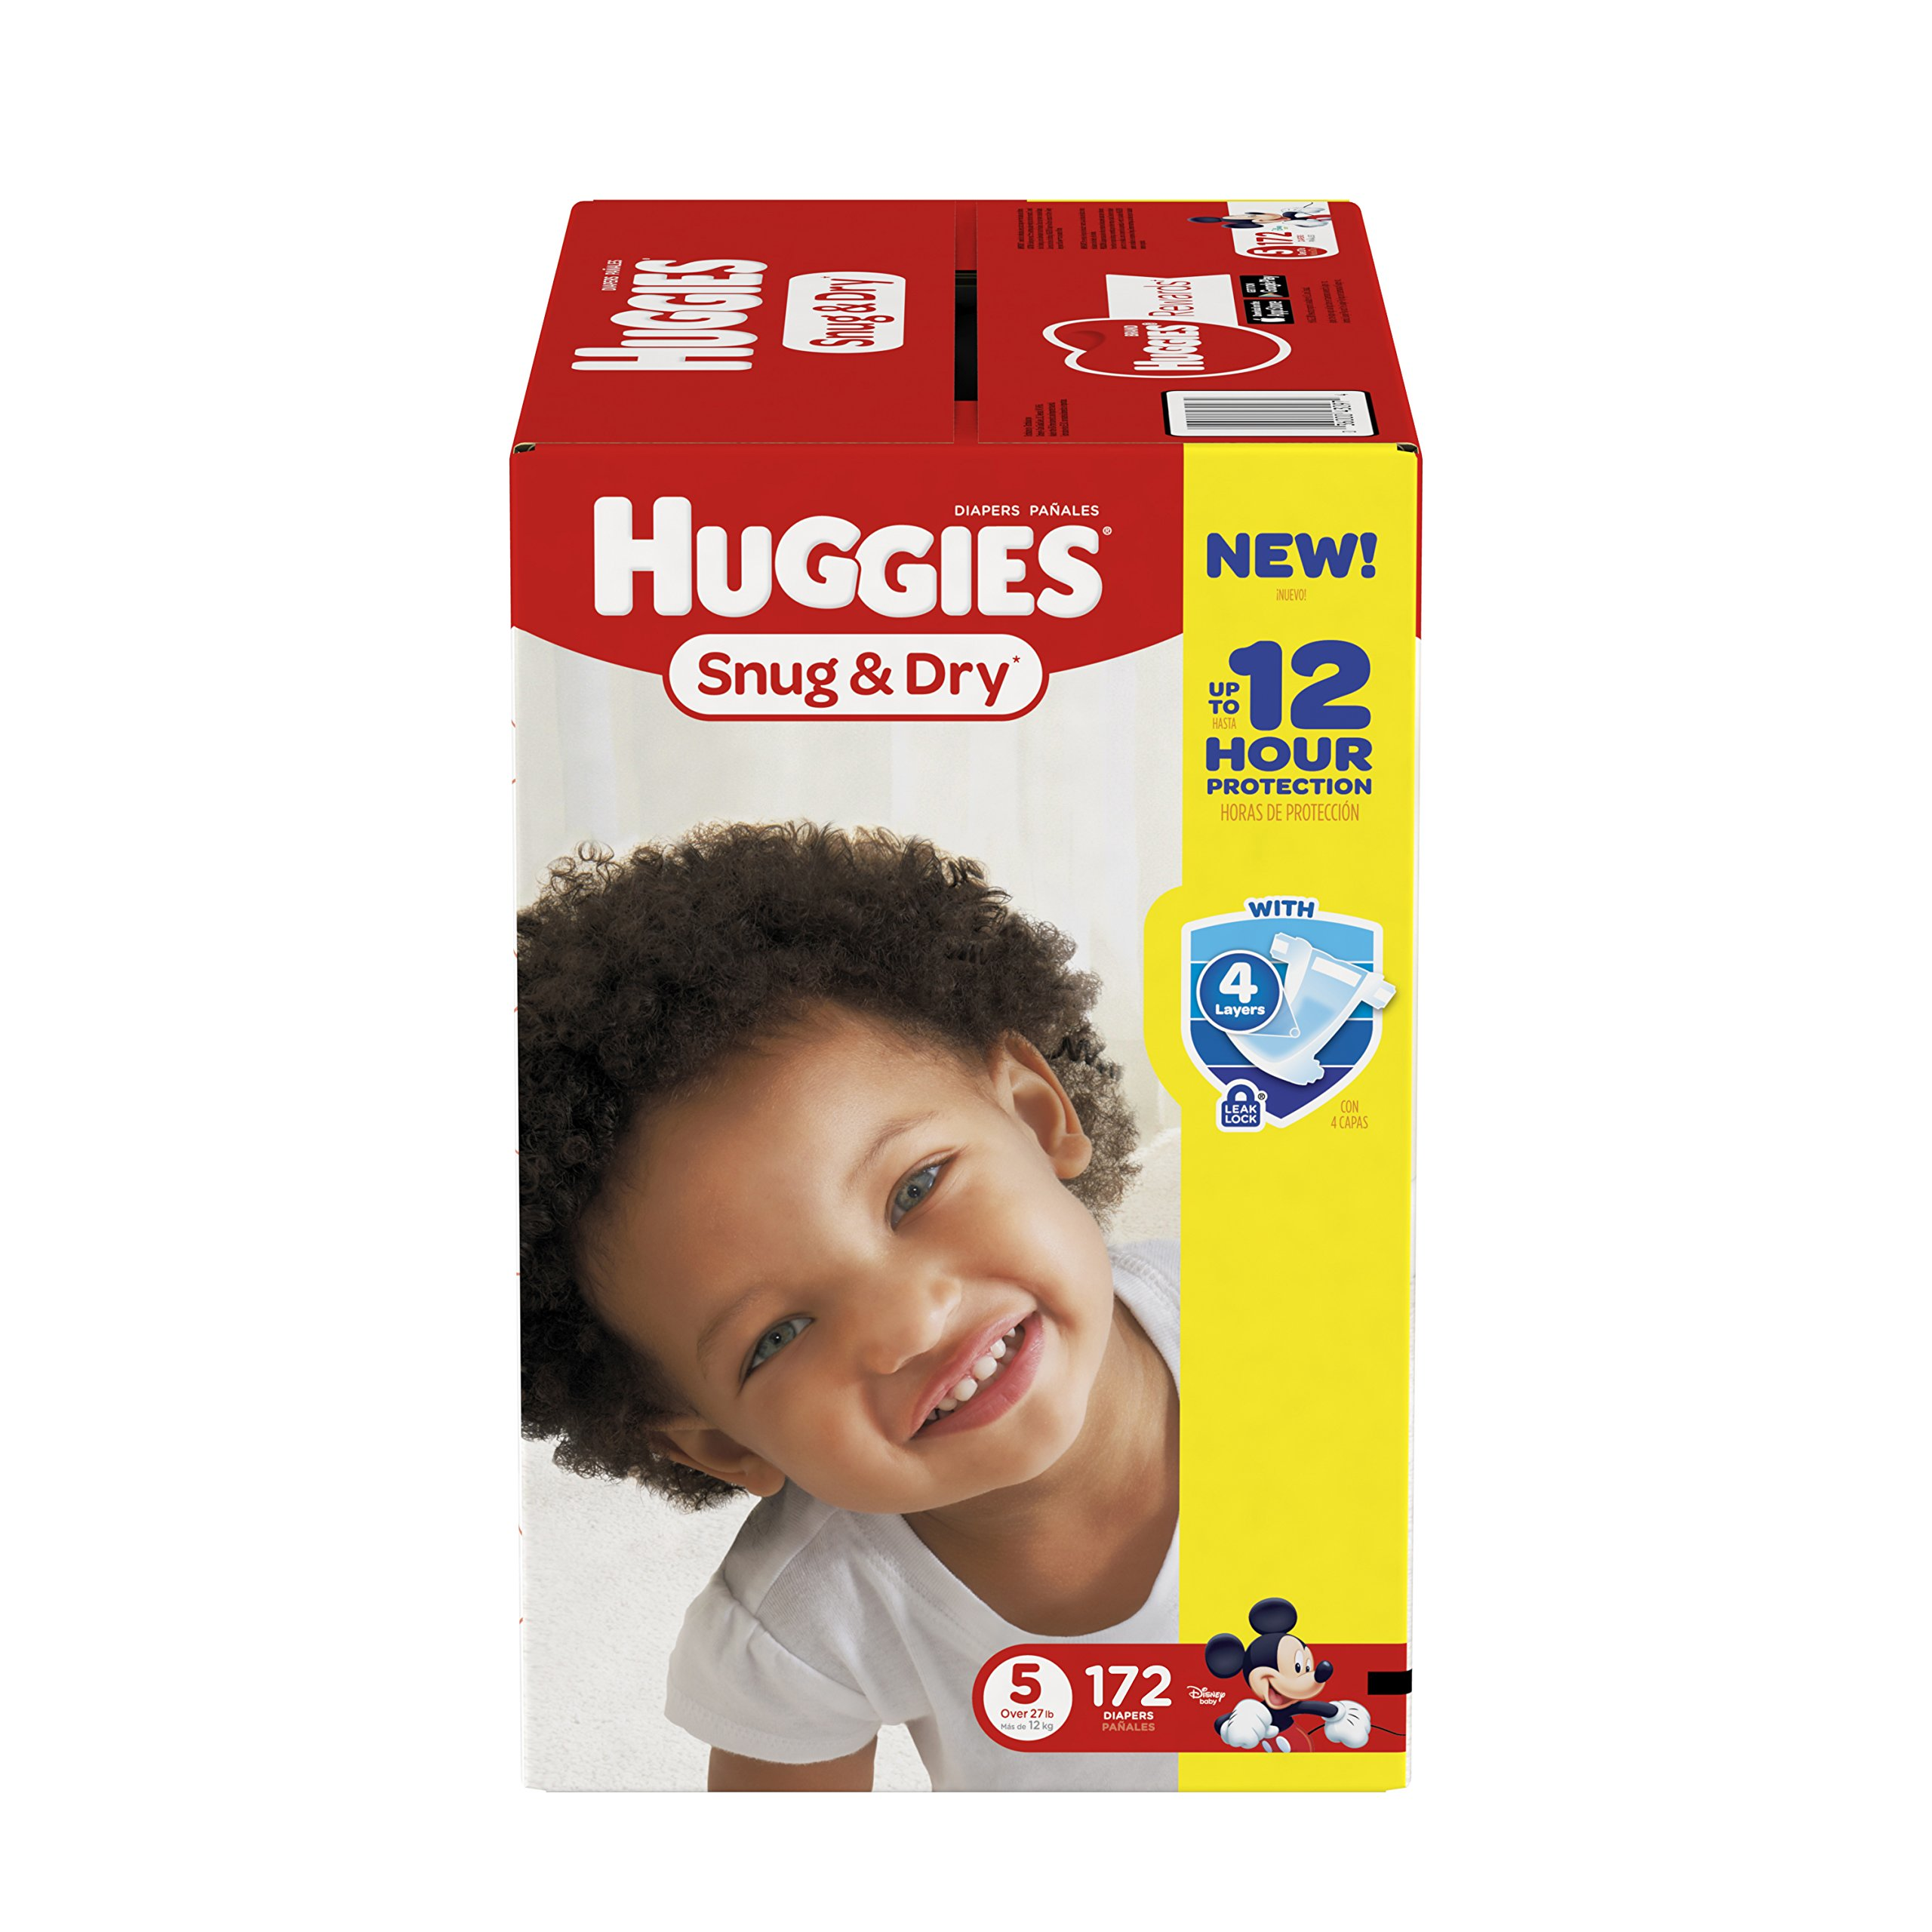 HUGGIES Snug & Dry Diapers, Size 5, for Over 27 lbs., One